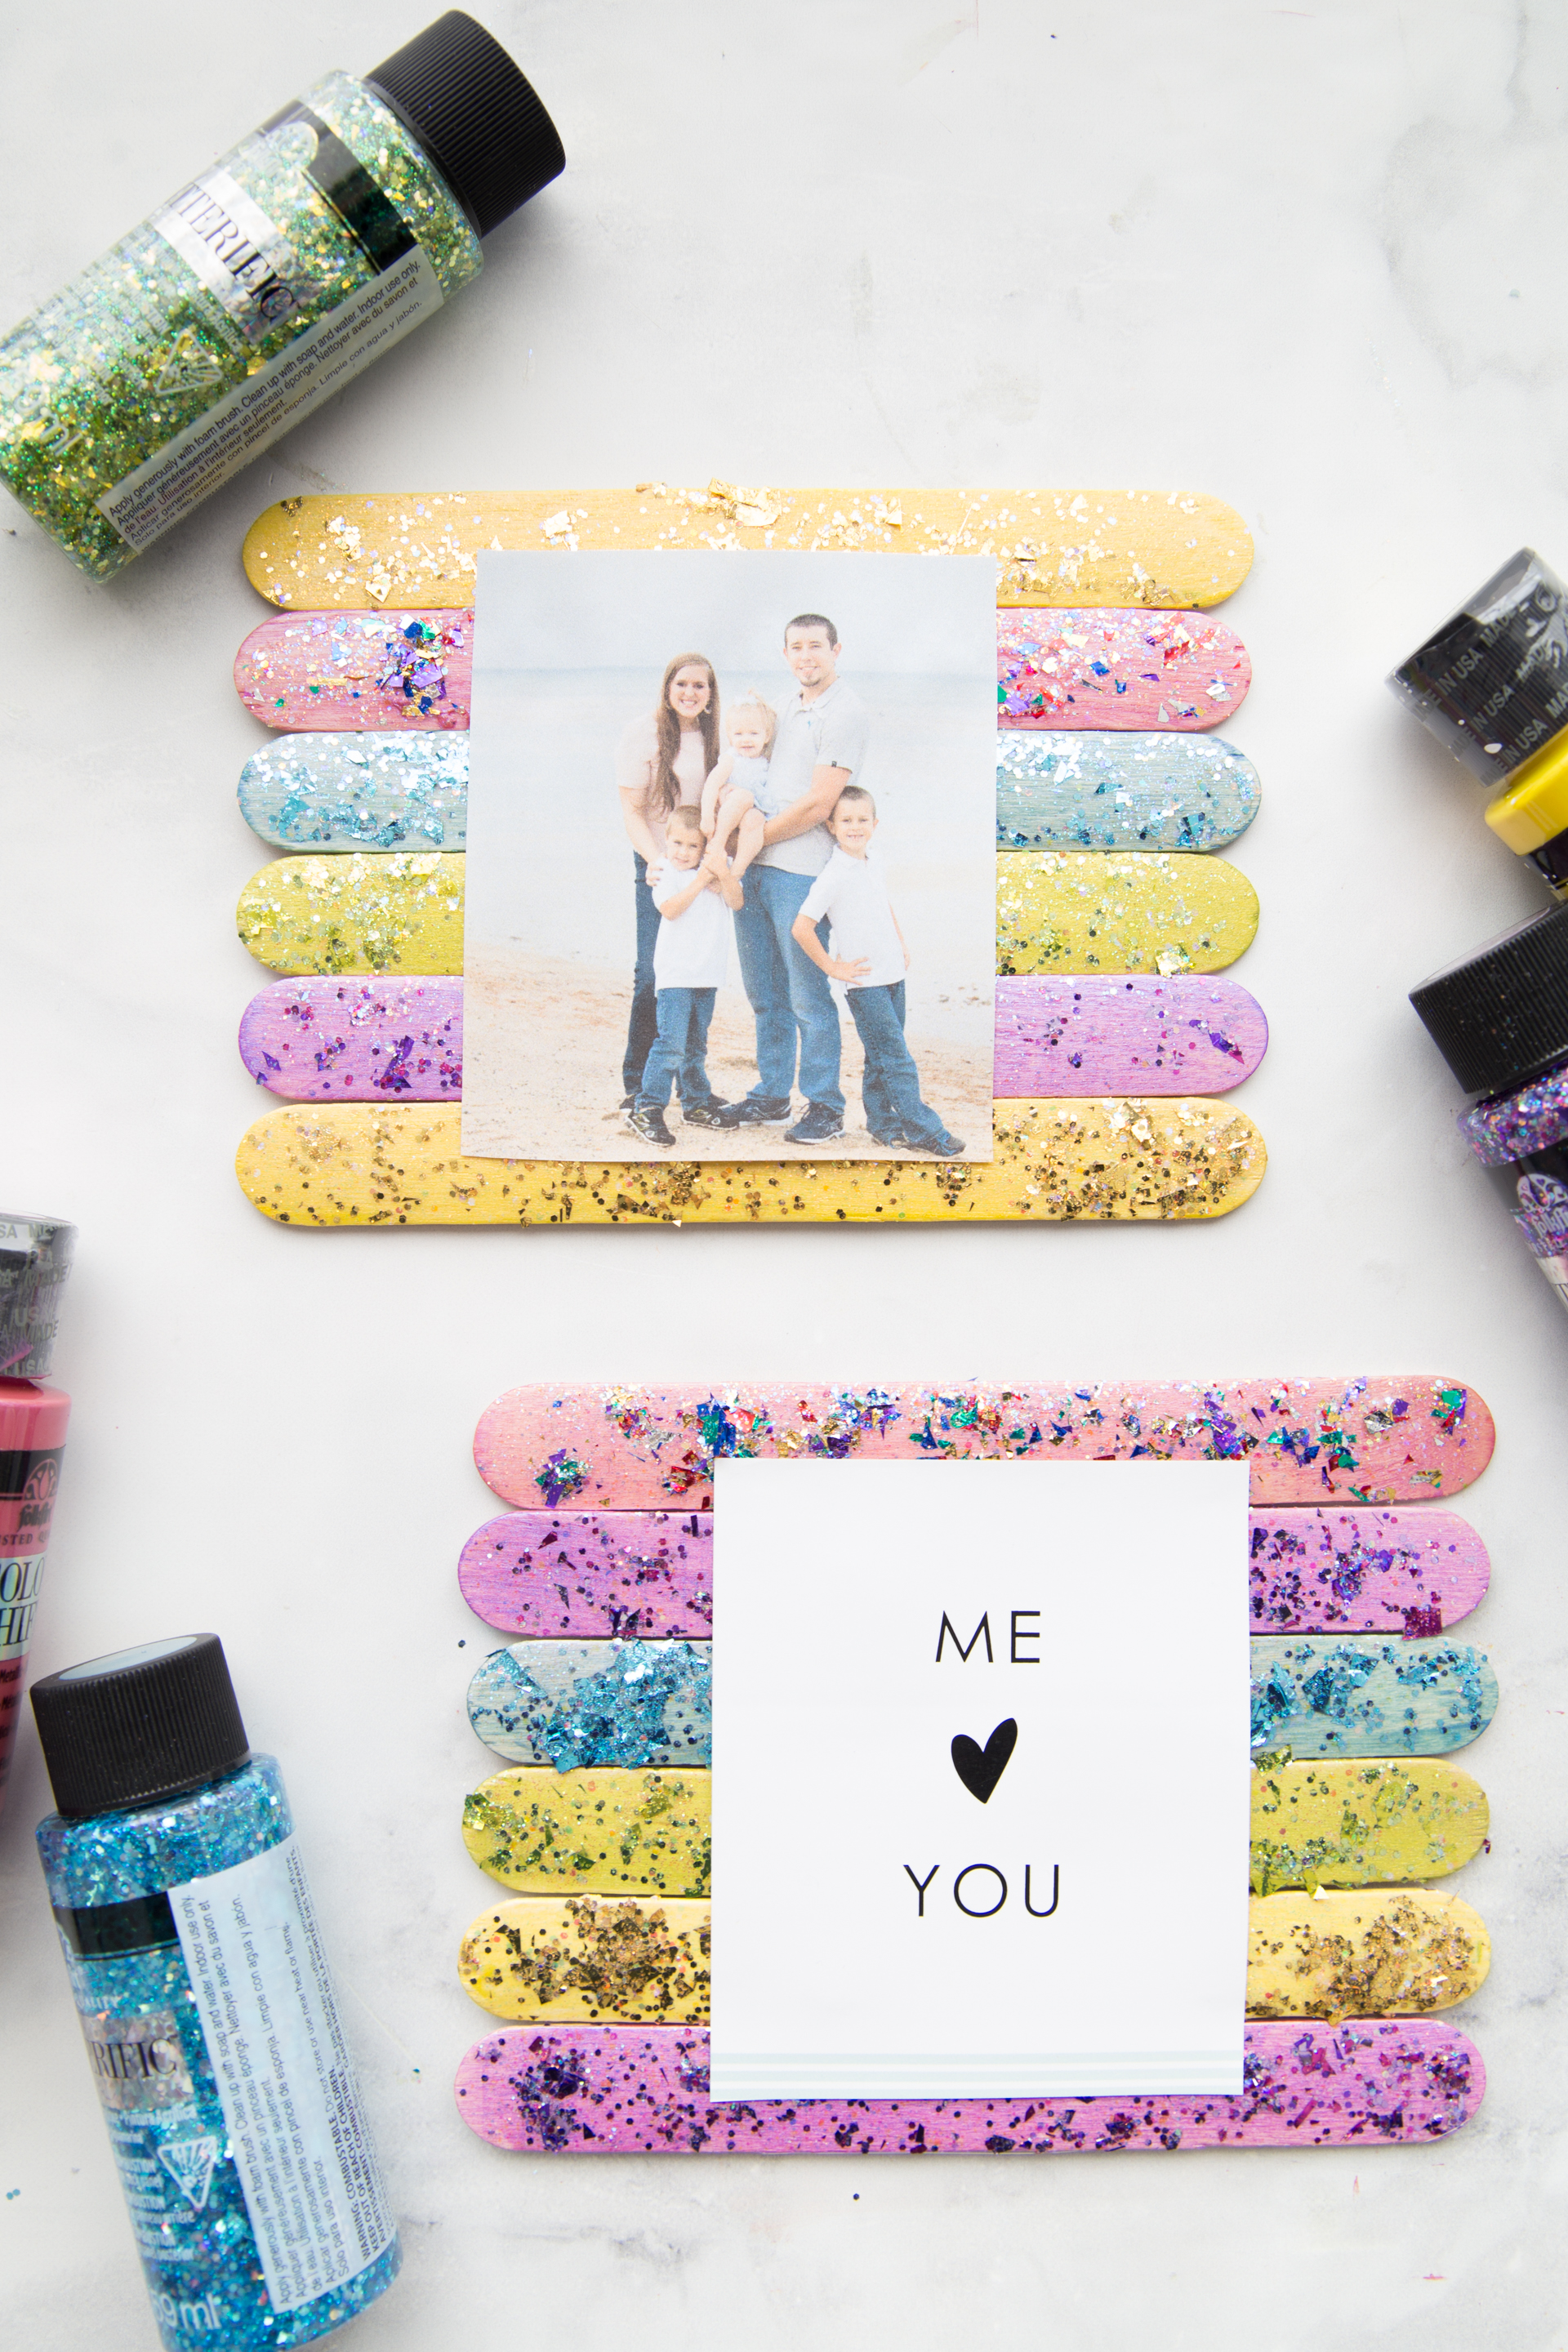 Glitter Popsicle Frames: a colorful and sparkly popsicle stick frame to show off some of your favorite images.